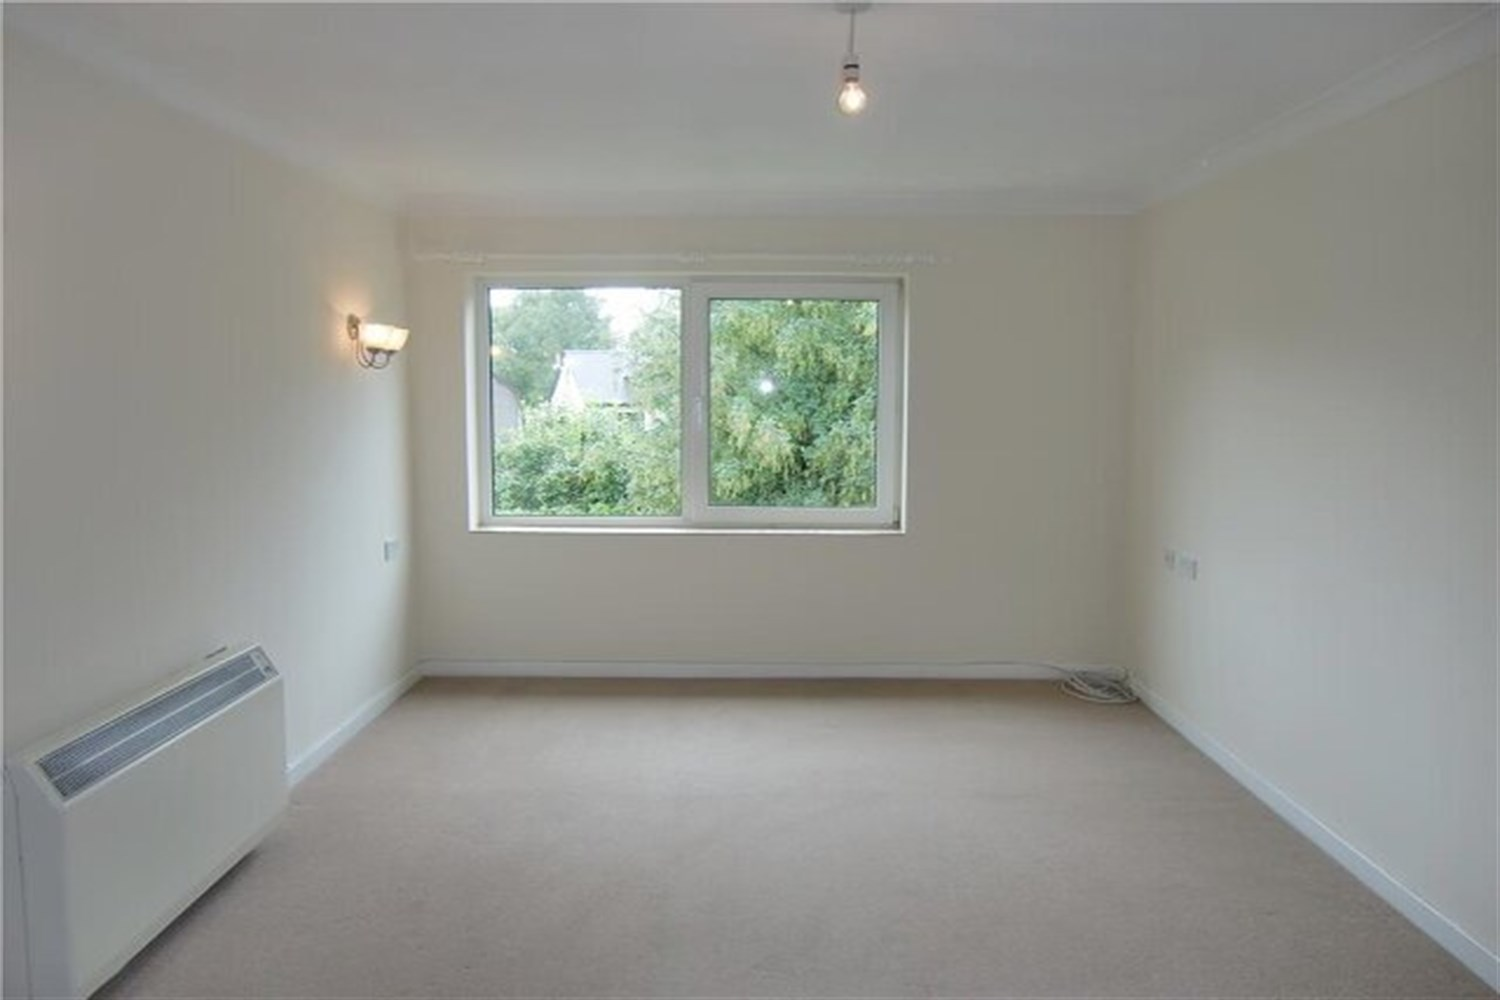 Cardiff, South Glamorgan 1 bedroom to let